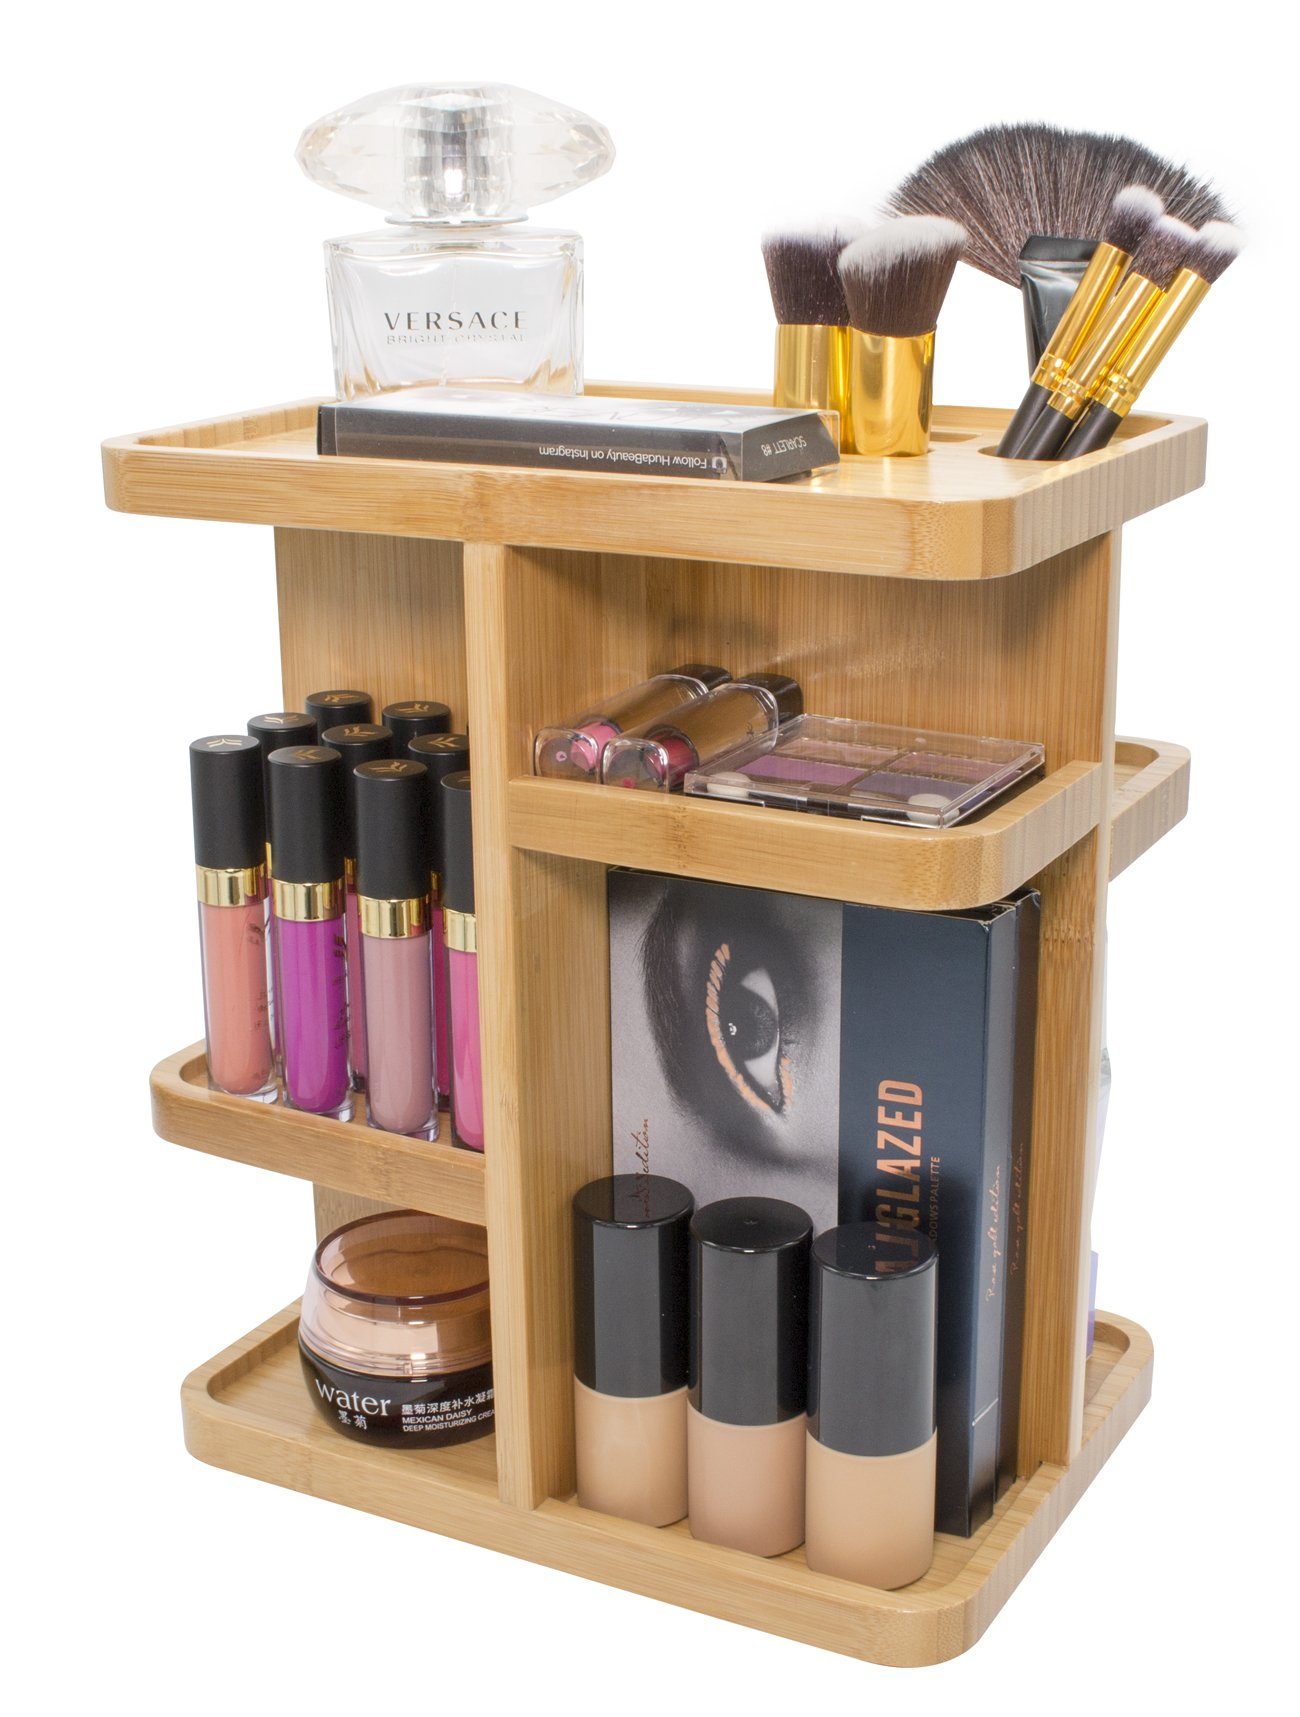 Sorbus 360° Bamboo Cosmetic Organizer, Multi-Function Storage Carousel for Makeup, Toiletries, and More — Great for Vanity, Desk, Bathroom, Bedroom, Closet, Kitchen by Sorbus